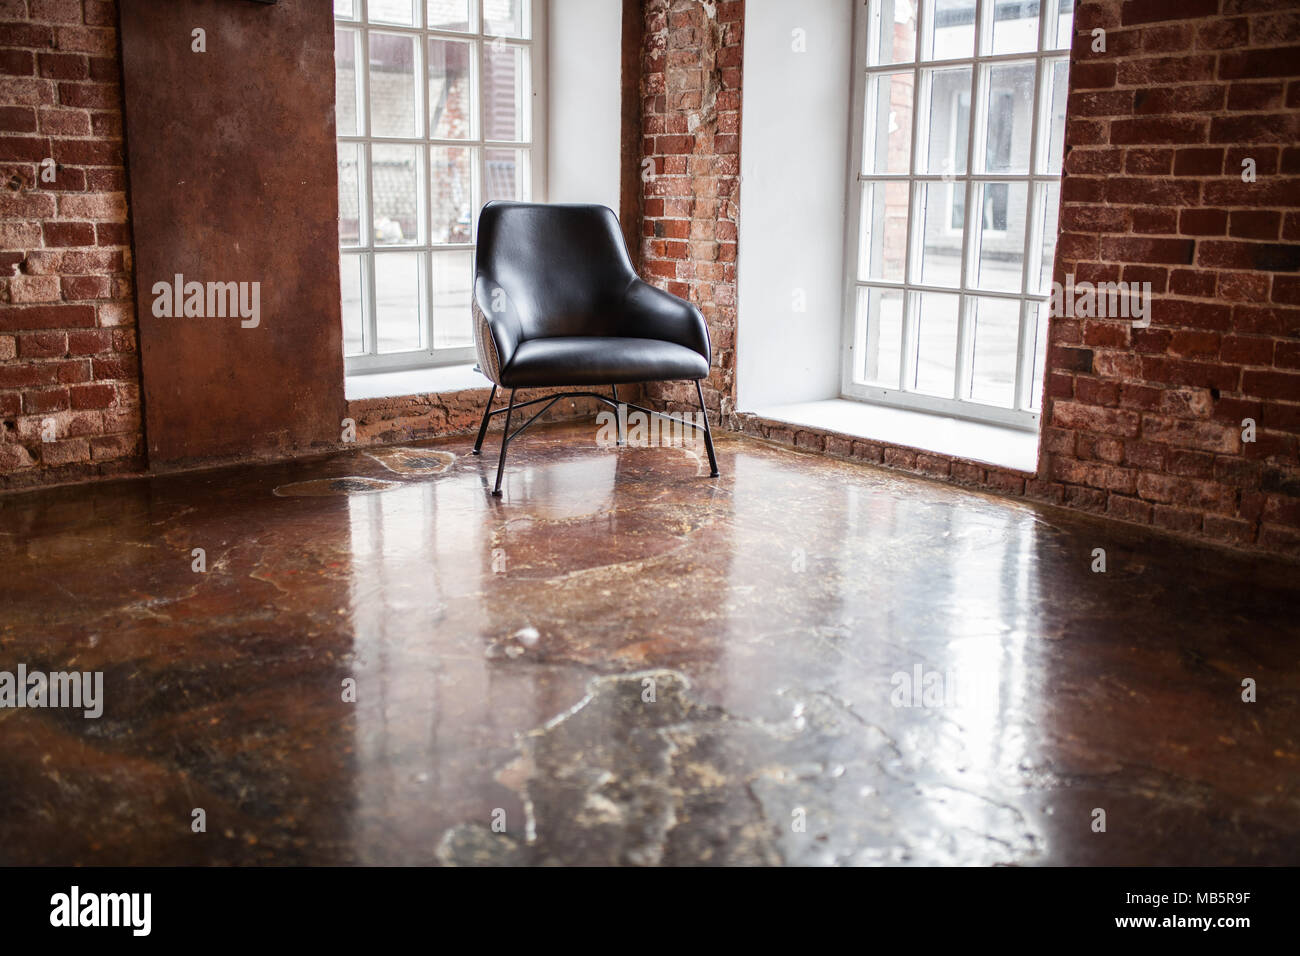 Chair Stands Near A Window On The Brick Wall Background In The Windows Loft  Style